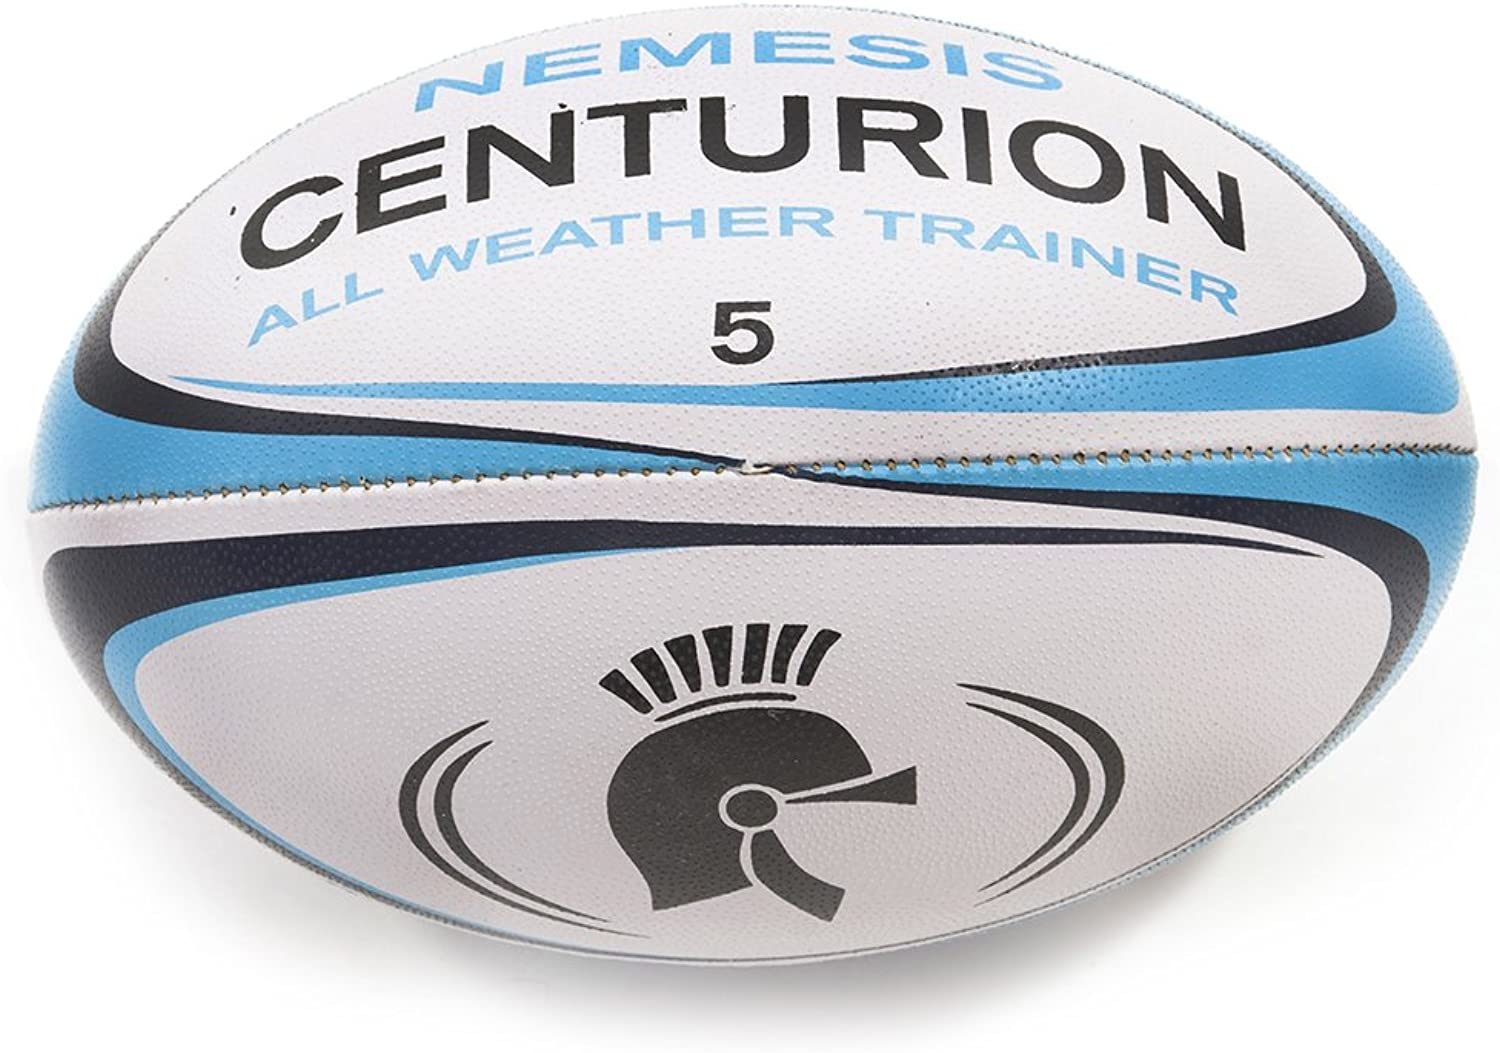 Centurion Nemesis All Weather Rugby Ball - blueee, Size 5